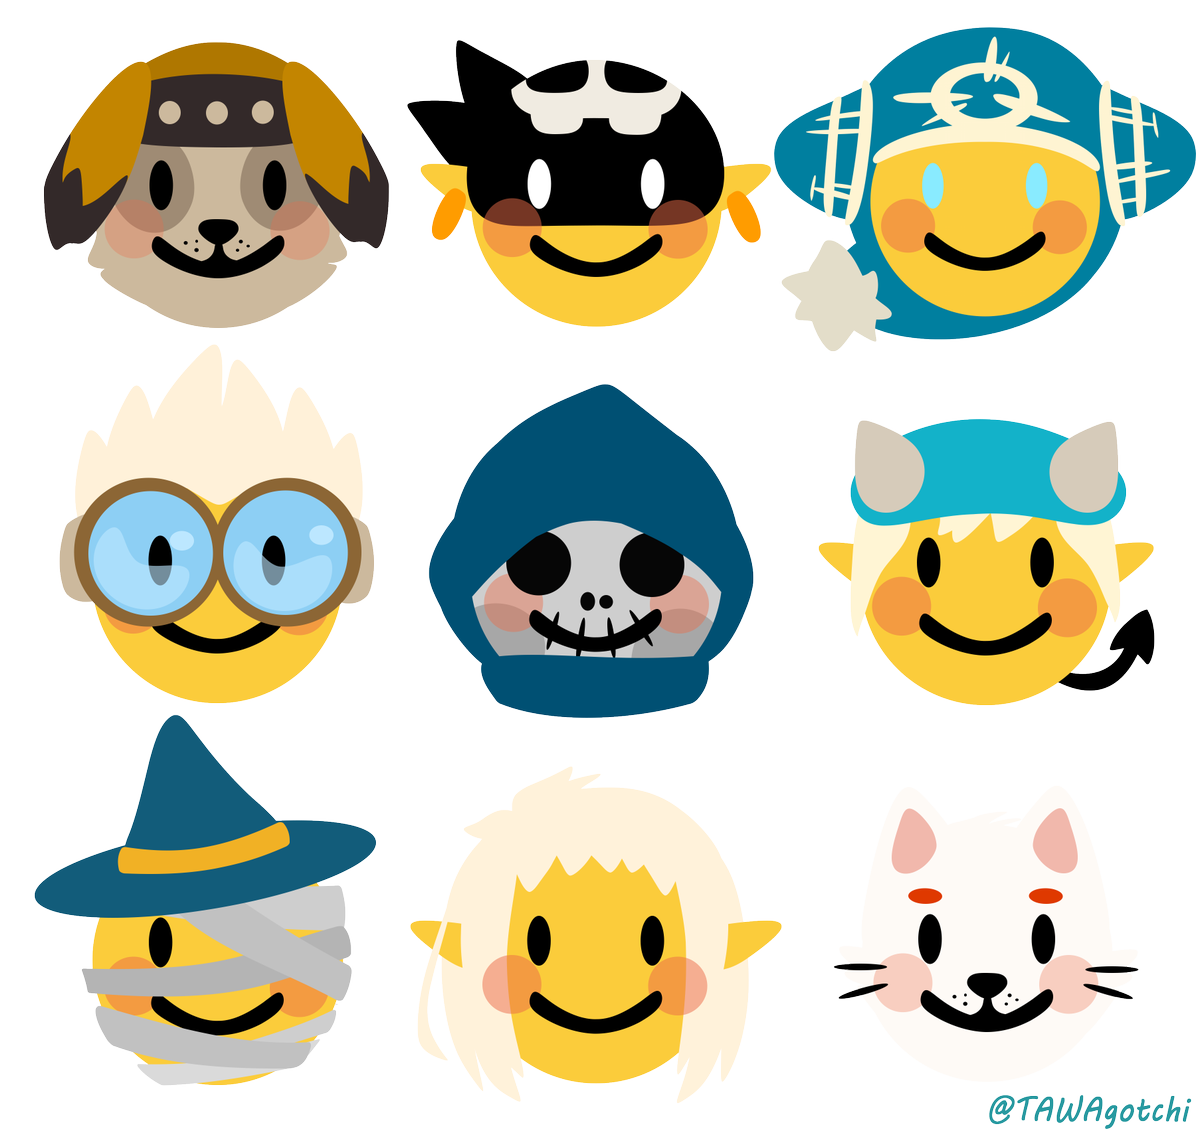 New Emojis on the Forum - WAKFU FORUM: Discussion forum for